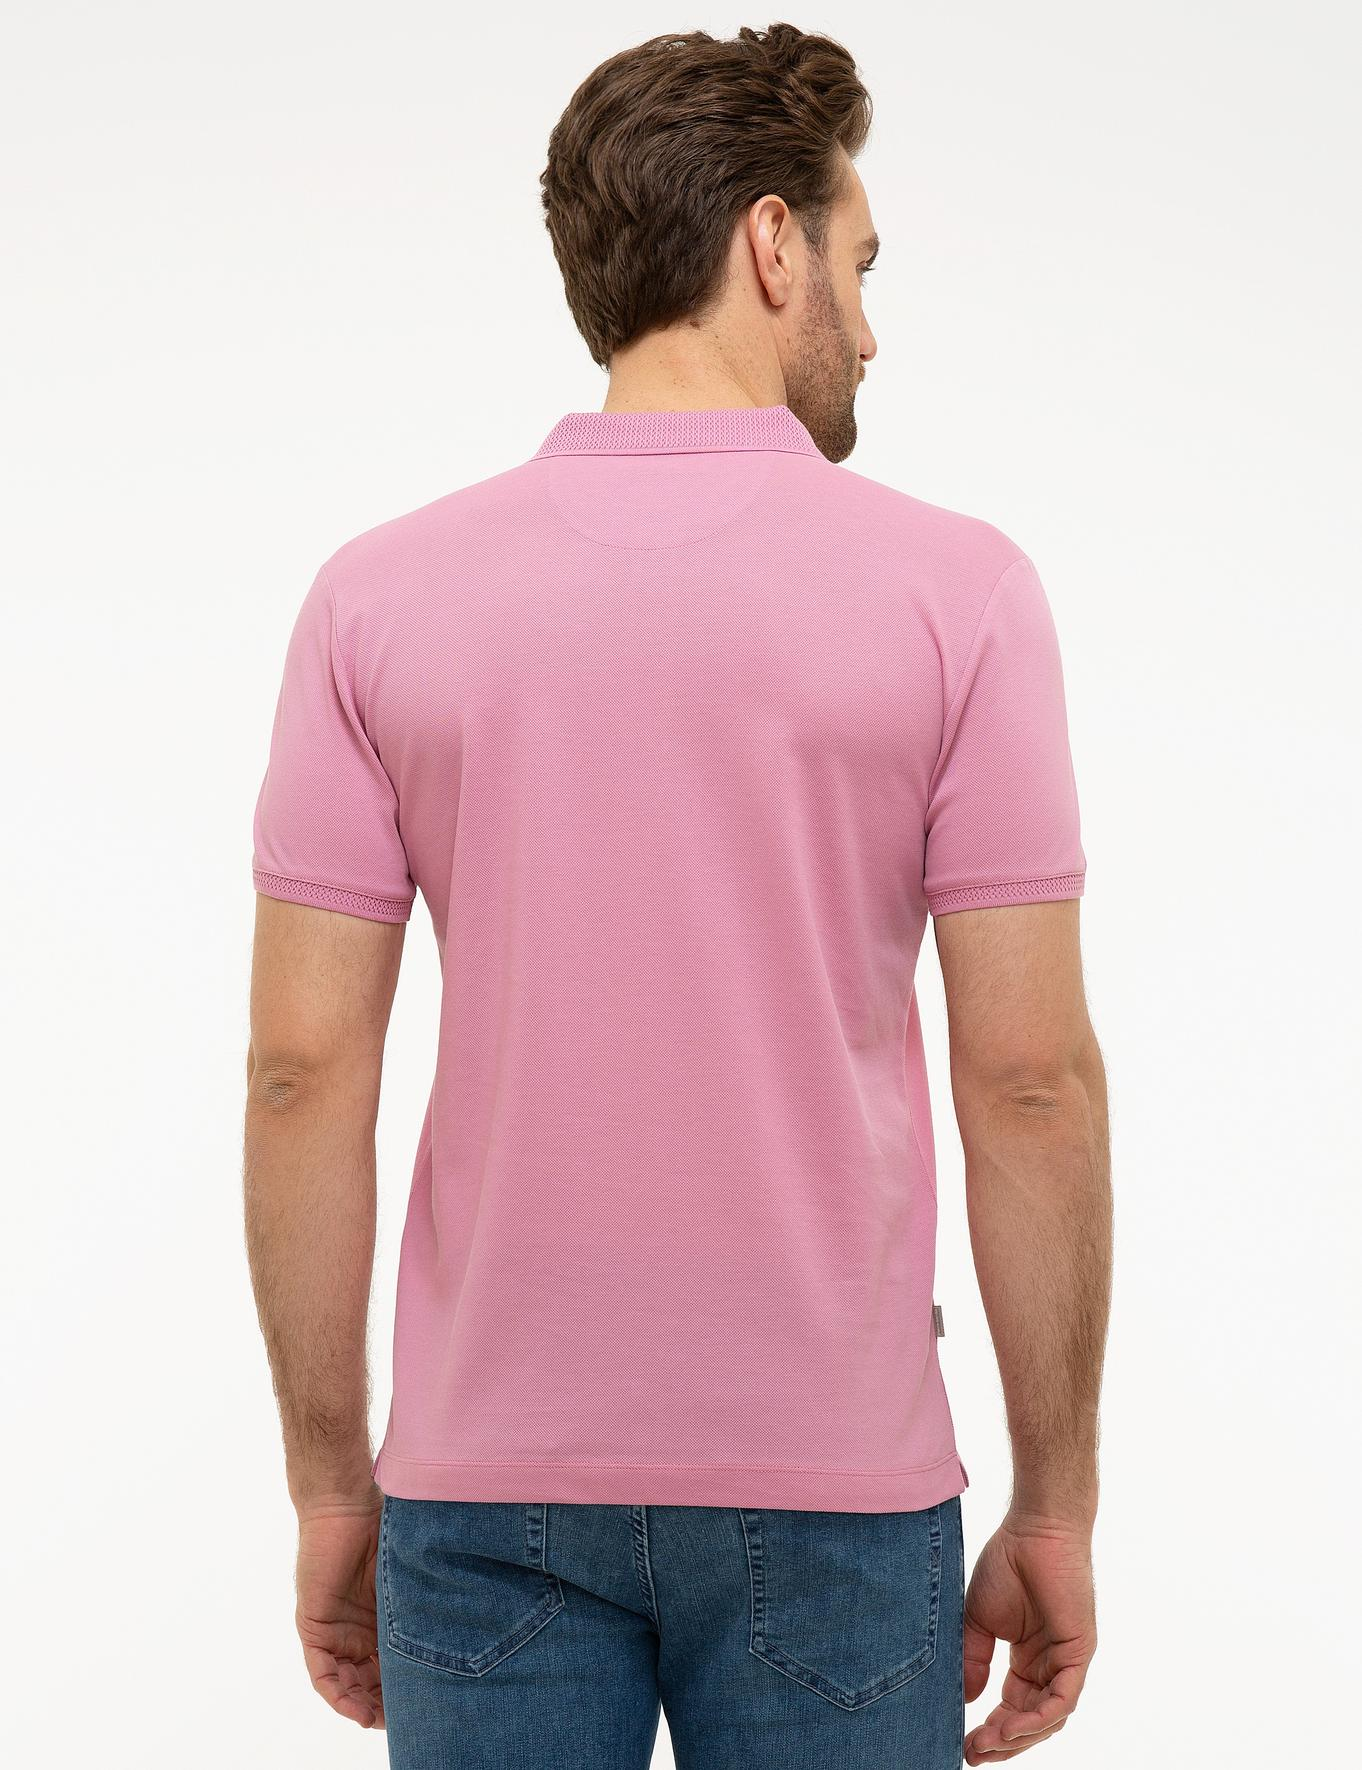 Pembe Slim Fit Merserize T-Shirt